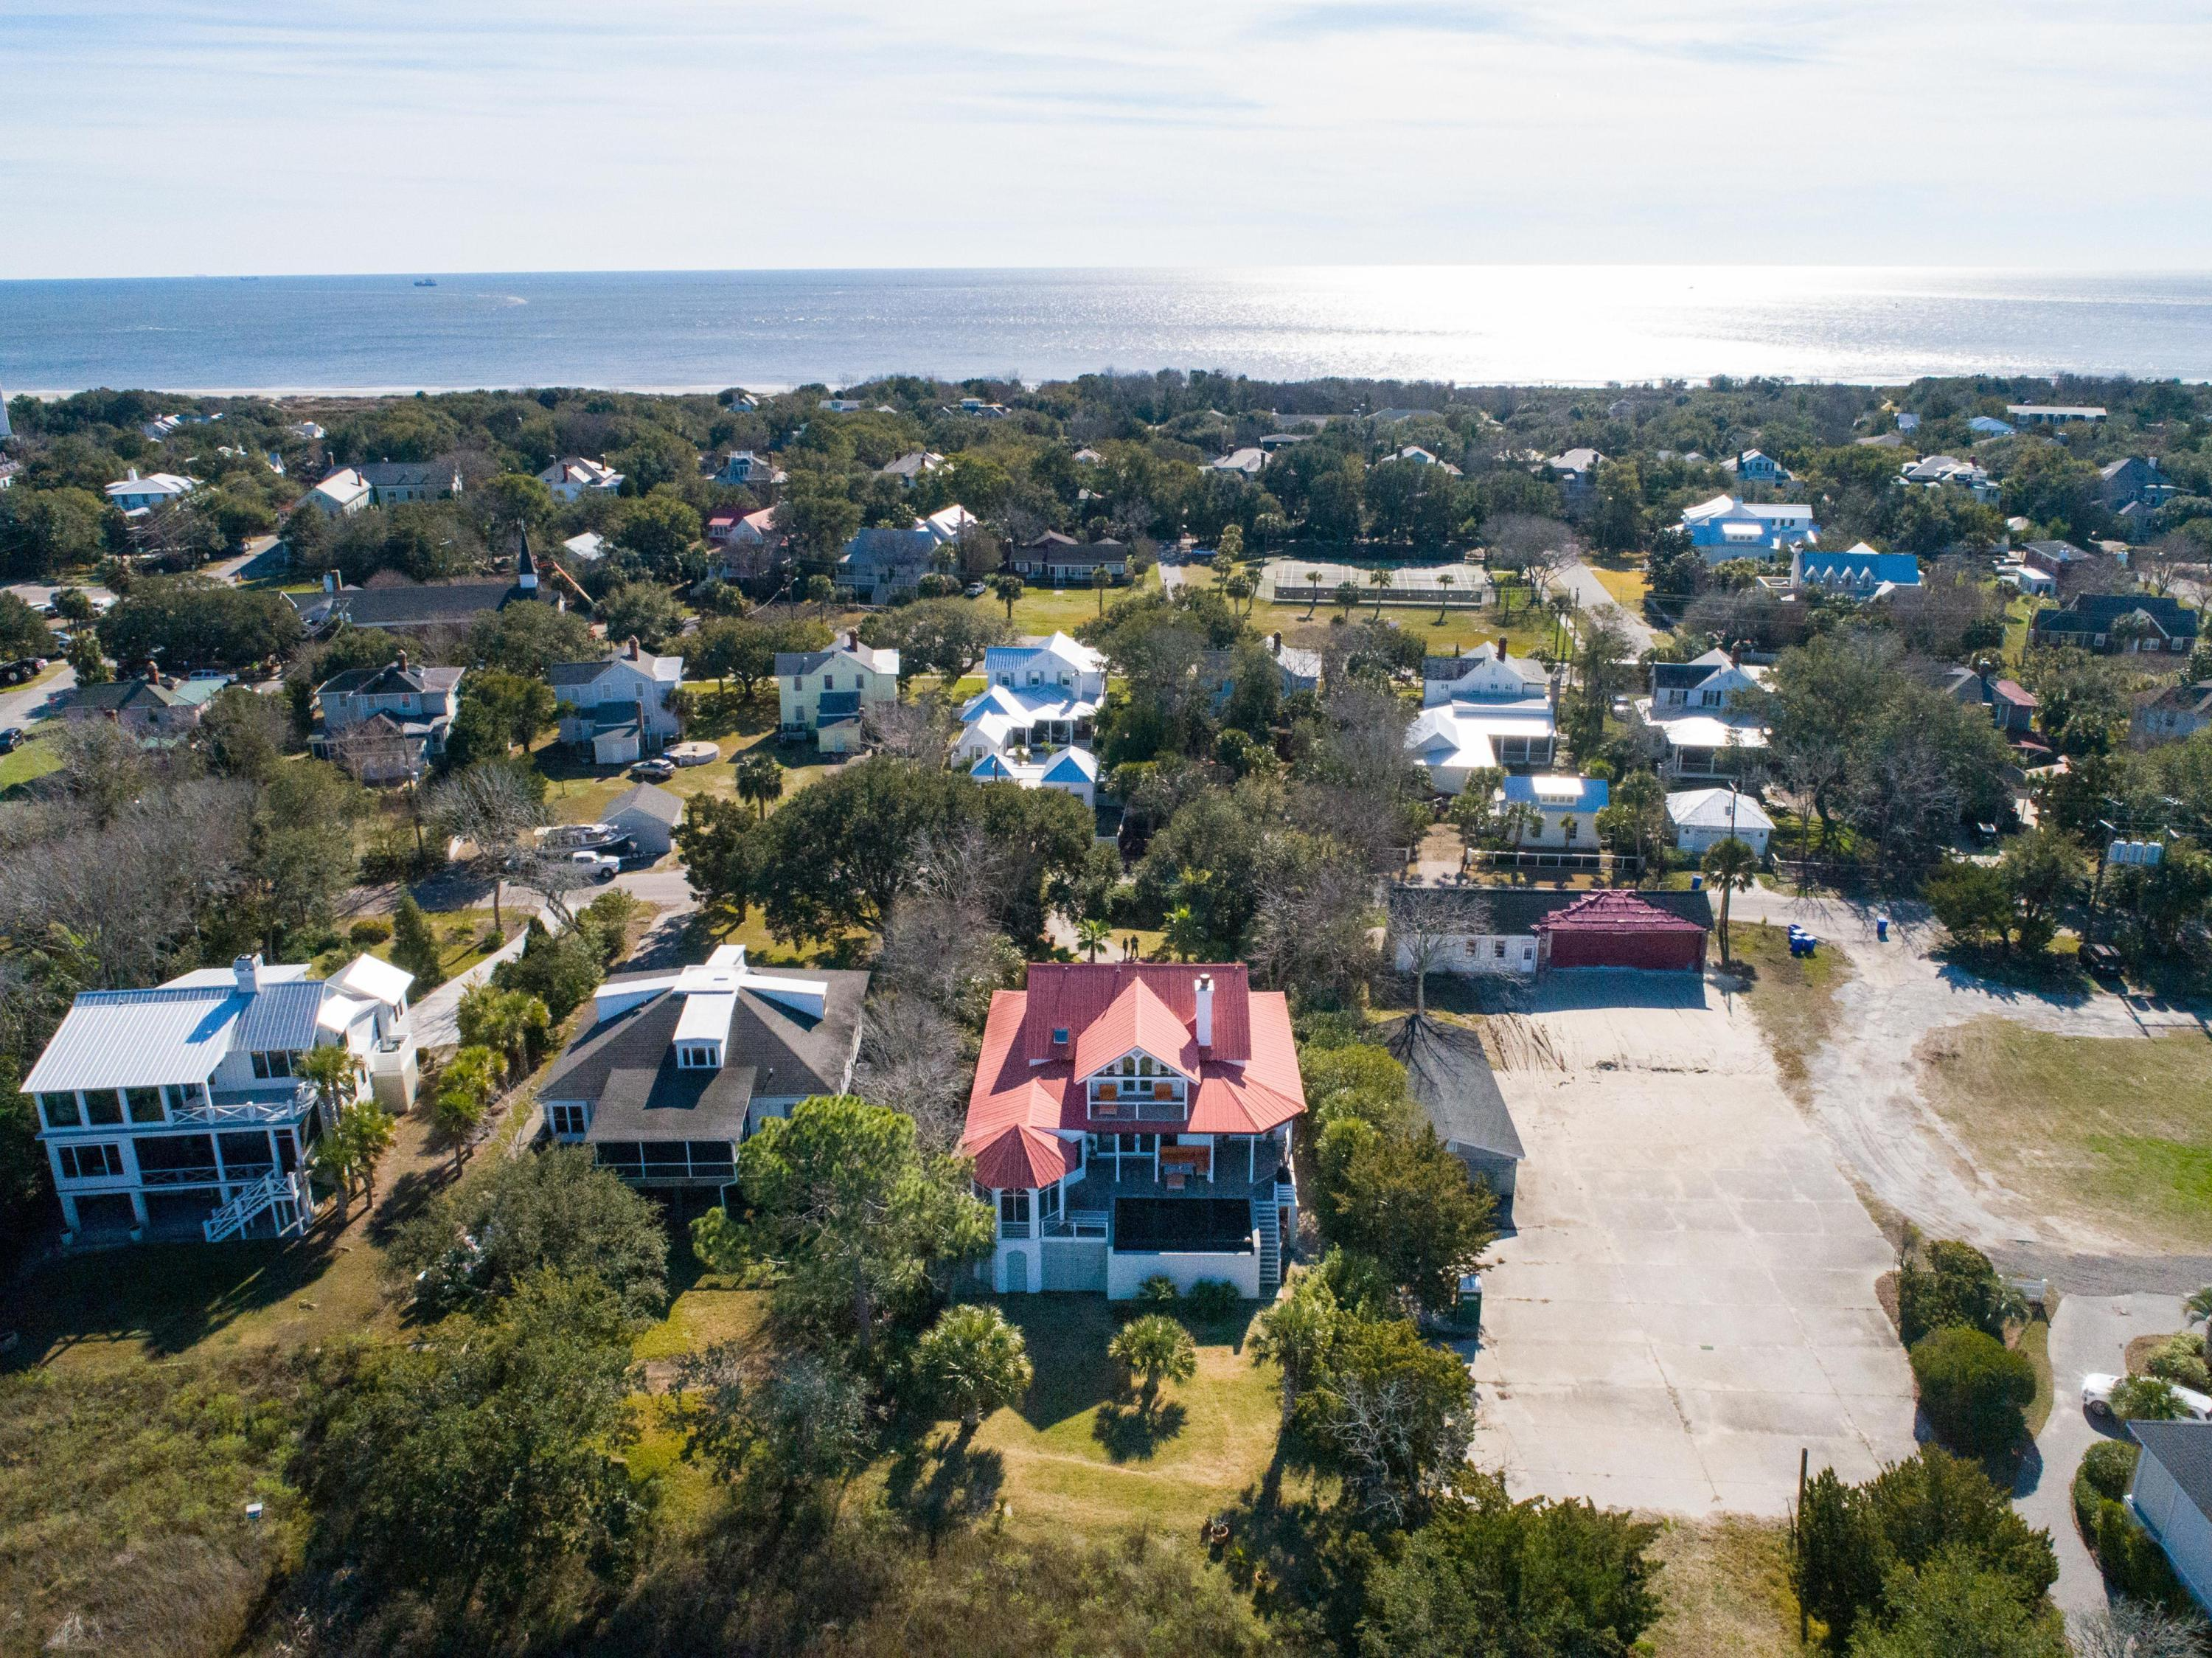 Sullivans Island Homes For Sale - 1734 Thompson, Sullivans Island, SC - 4